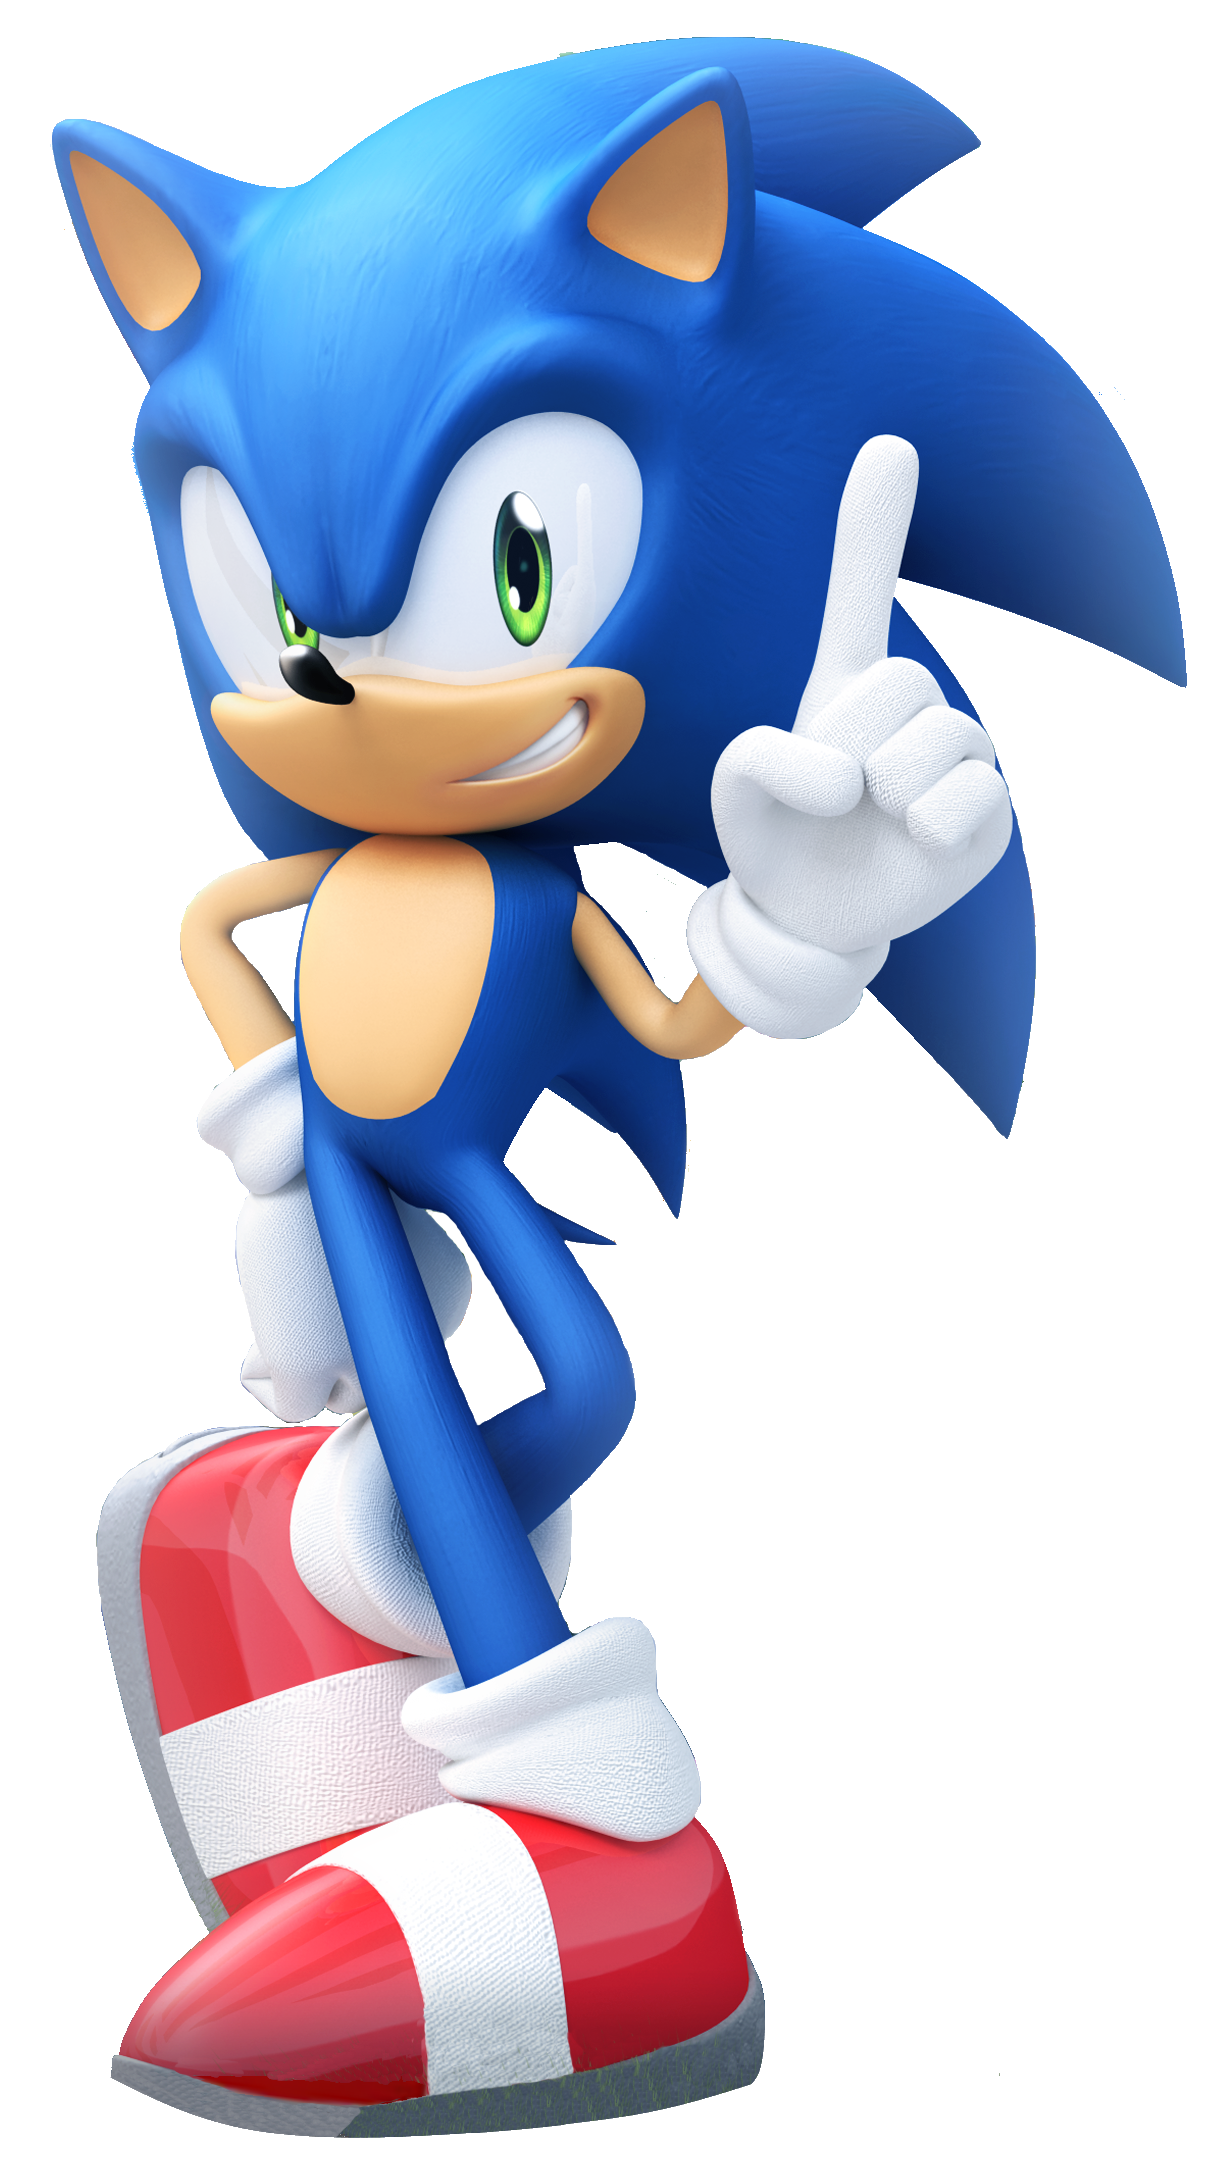 Sonic the hedgehog face clipart jpg freeuse download Sonic the Hedgehog (Archie) | Sonic News Network | FANDOM ... jpg freeuse download